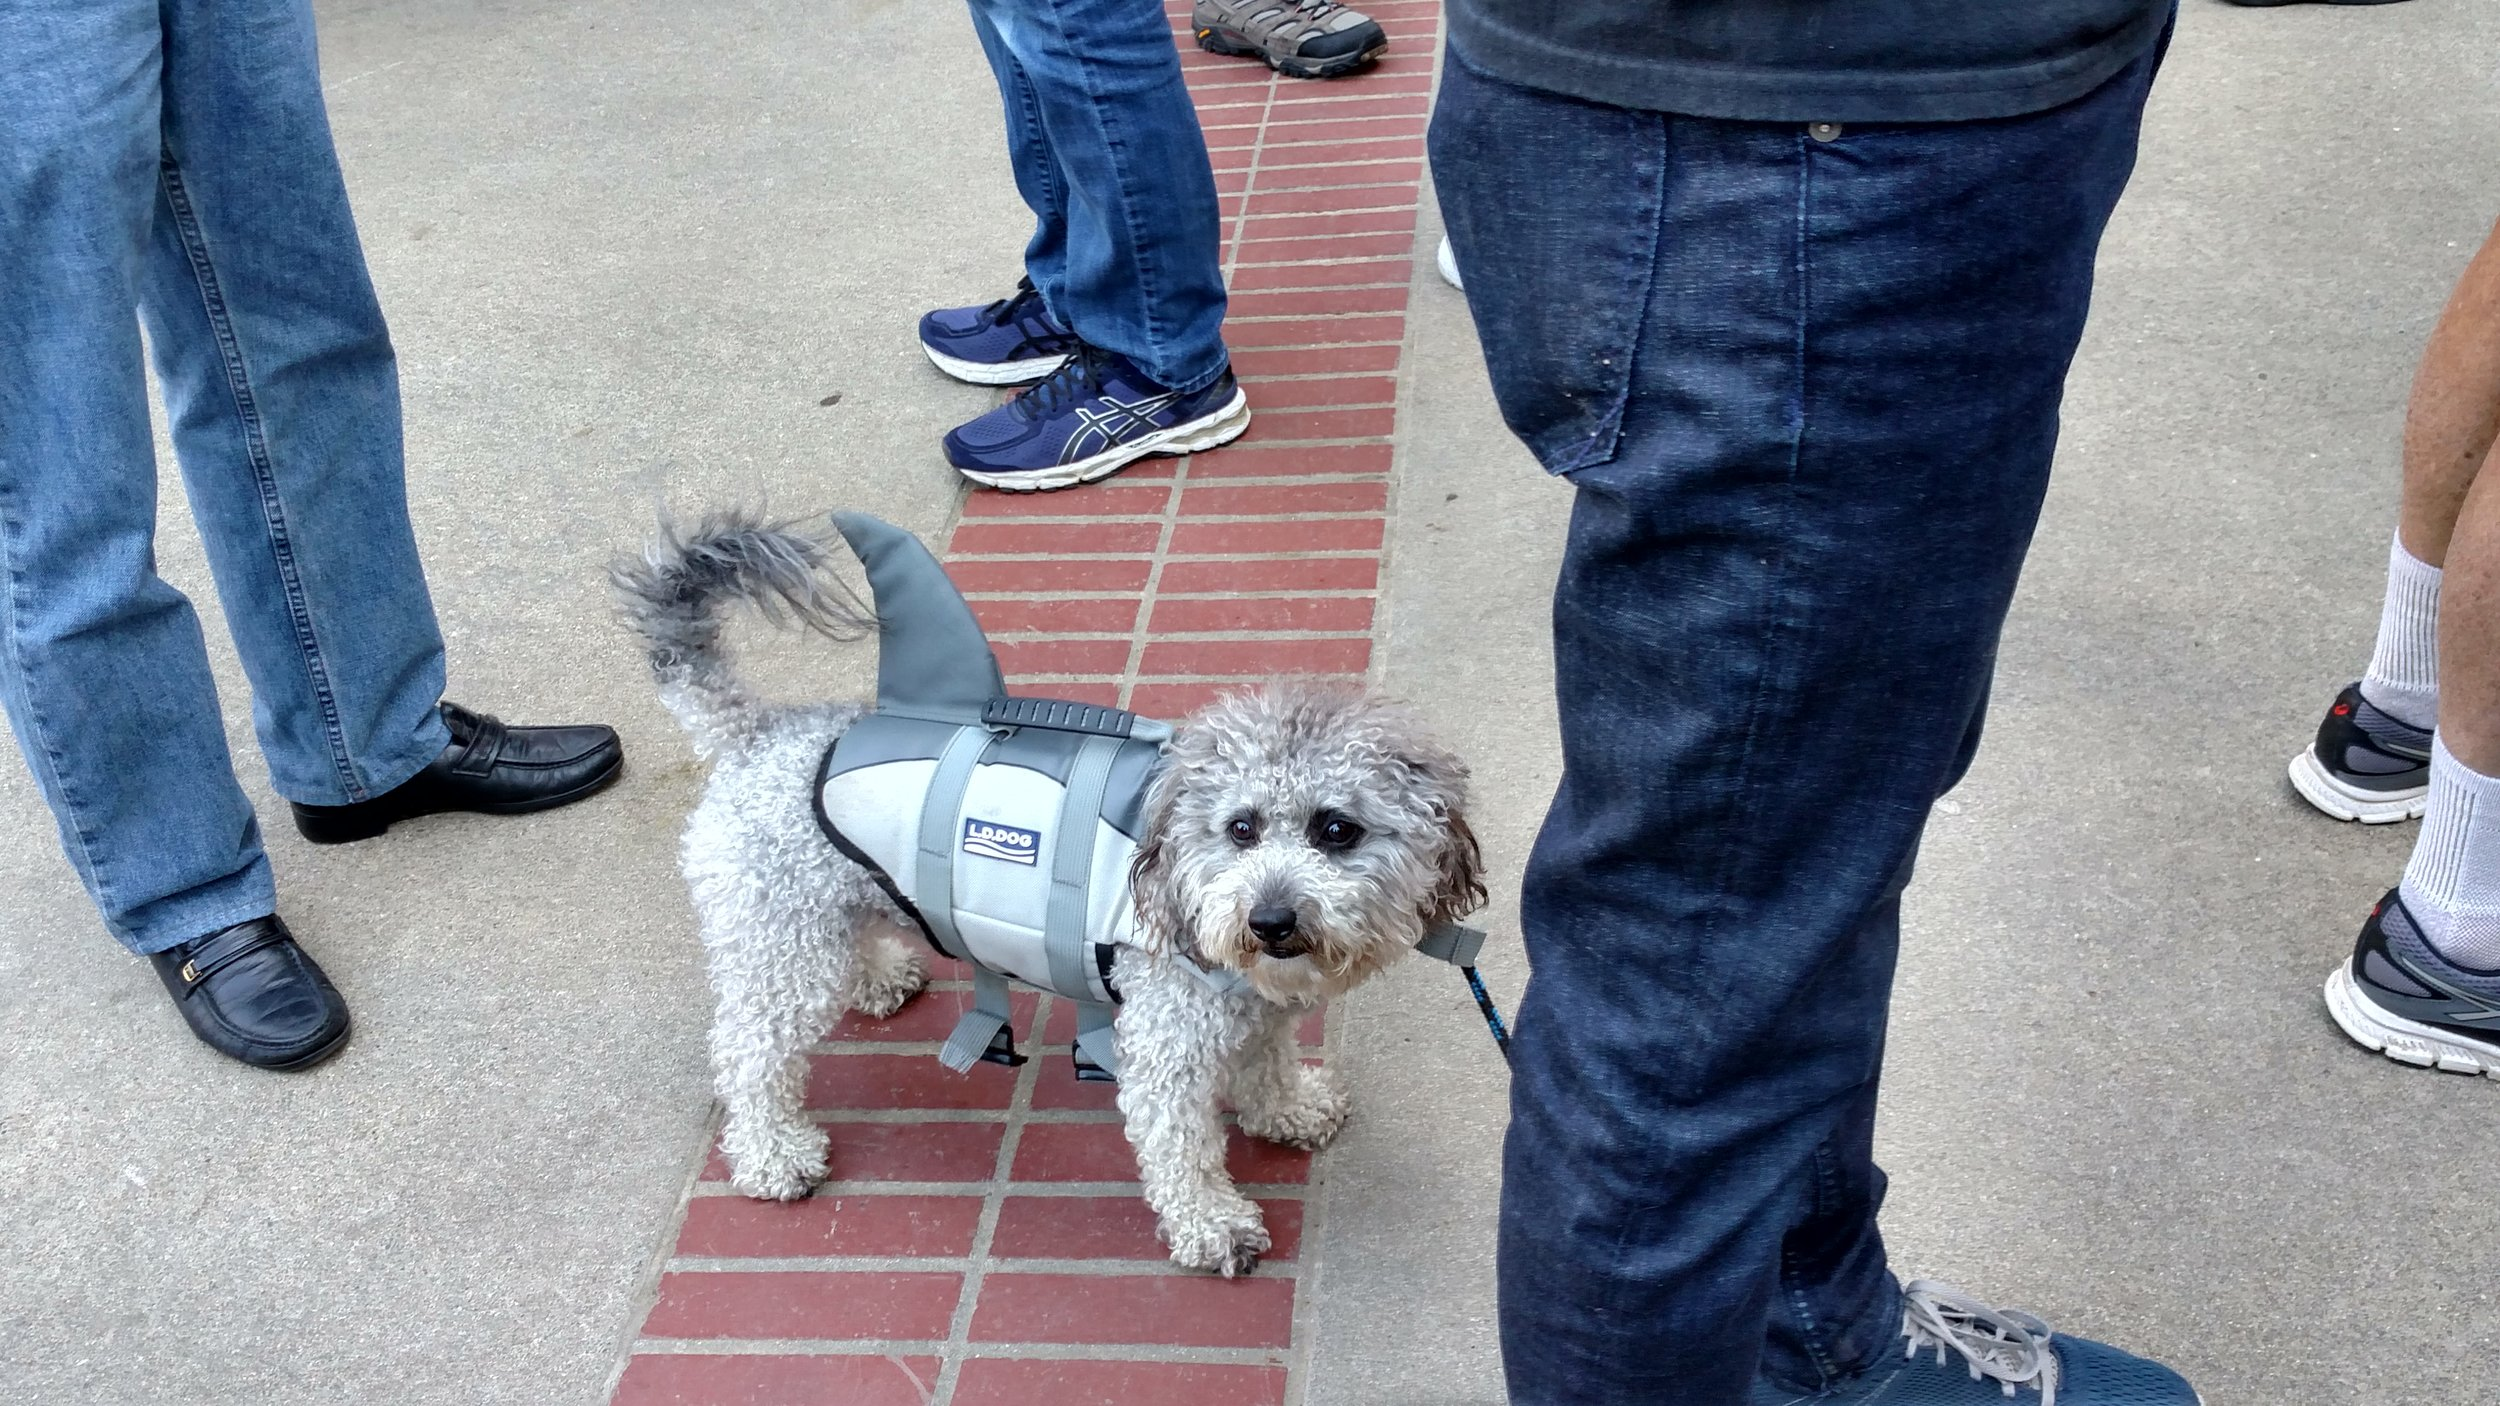 Even family pets got involved in the demonstrations, including this shark/dog.